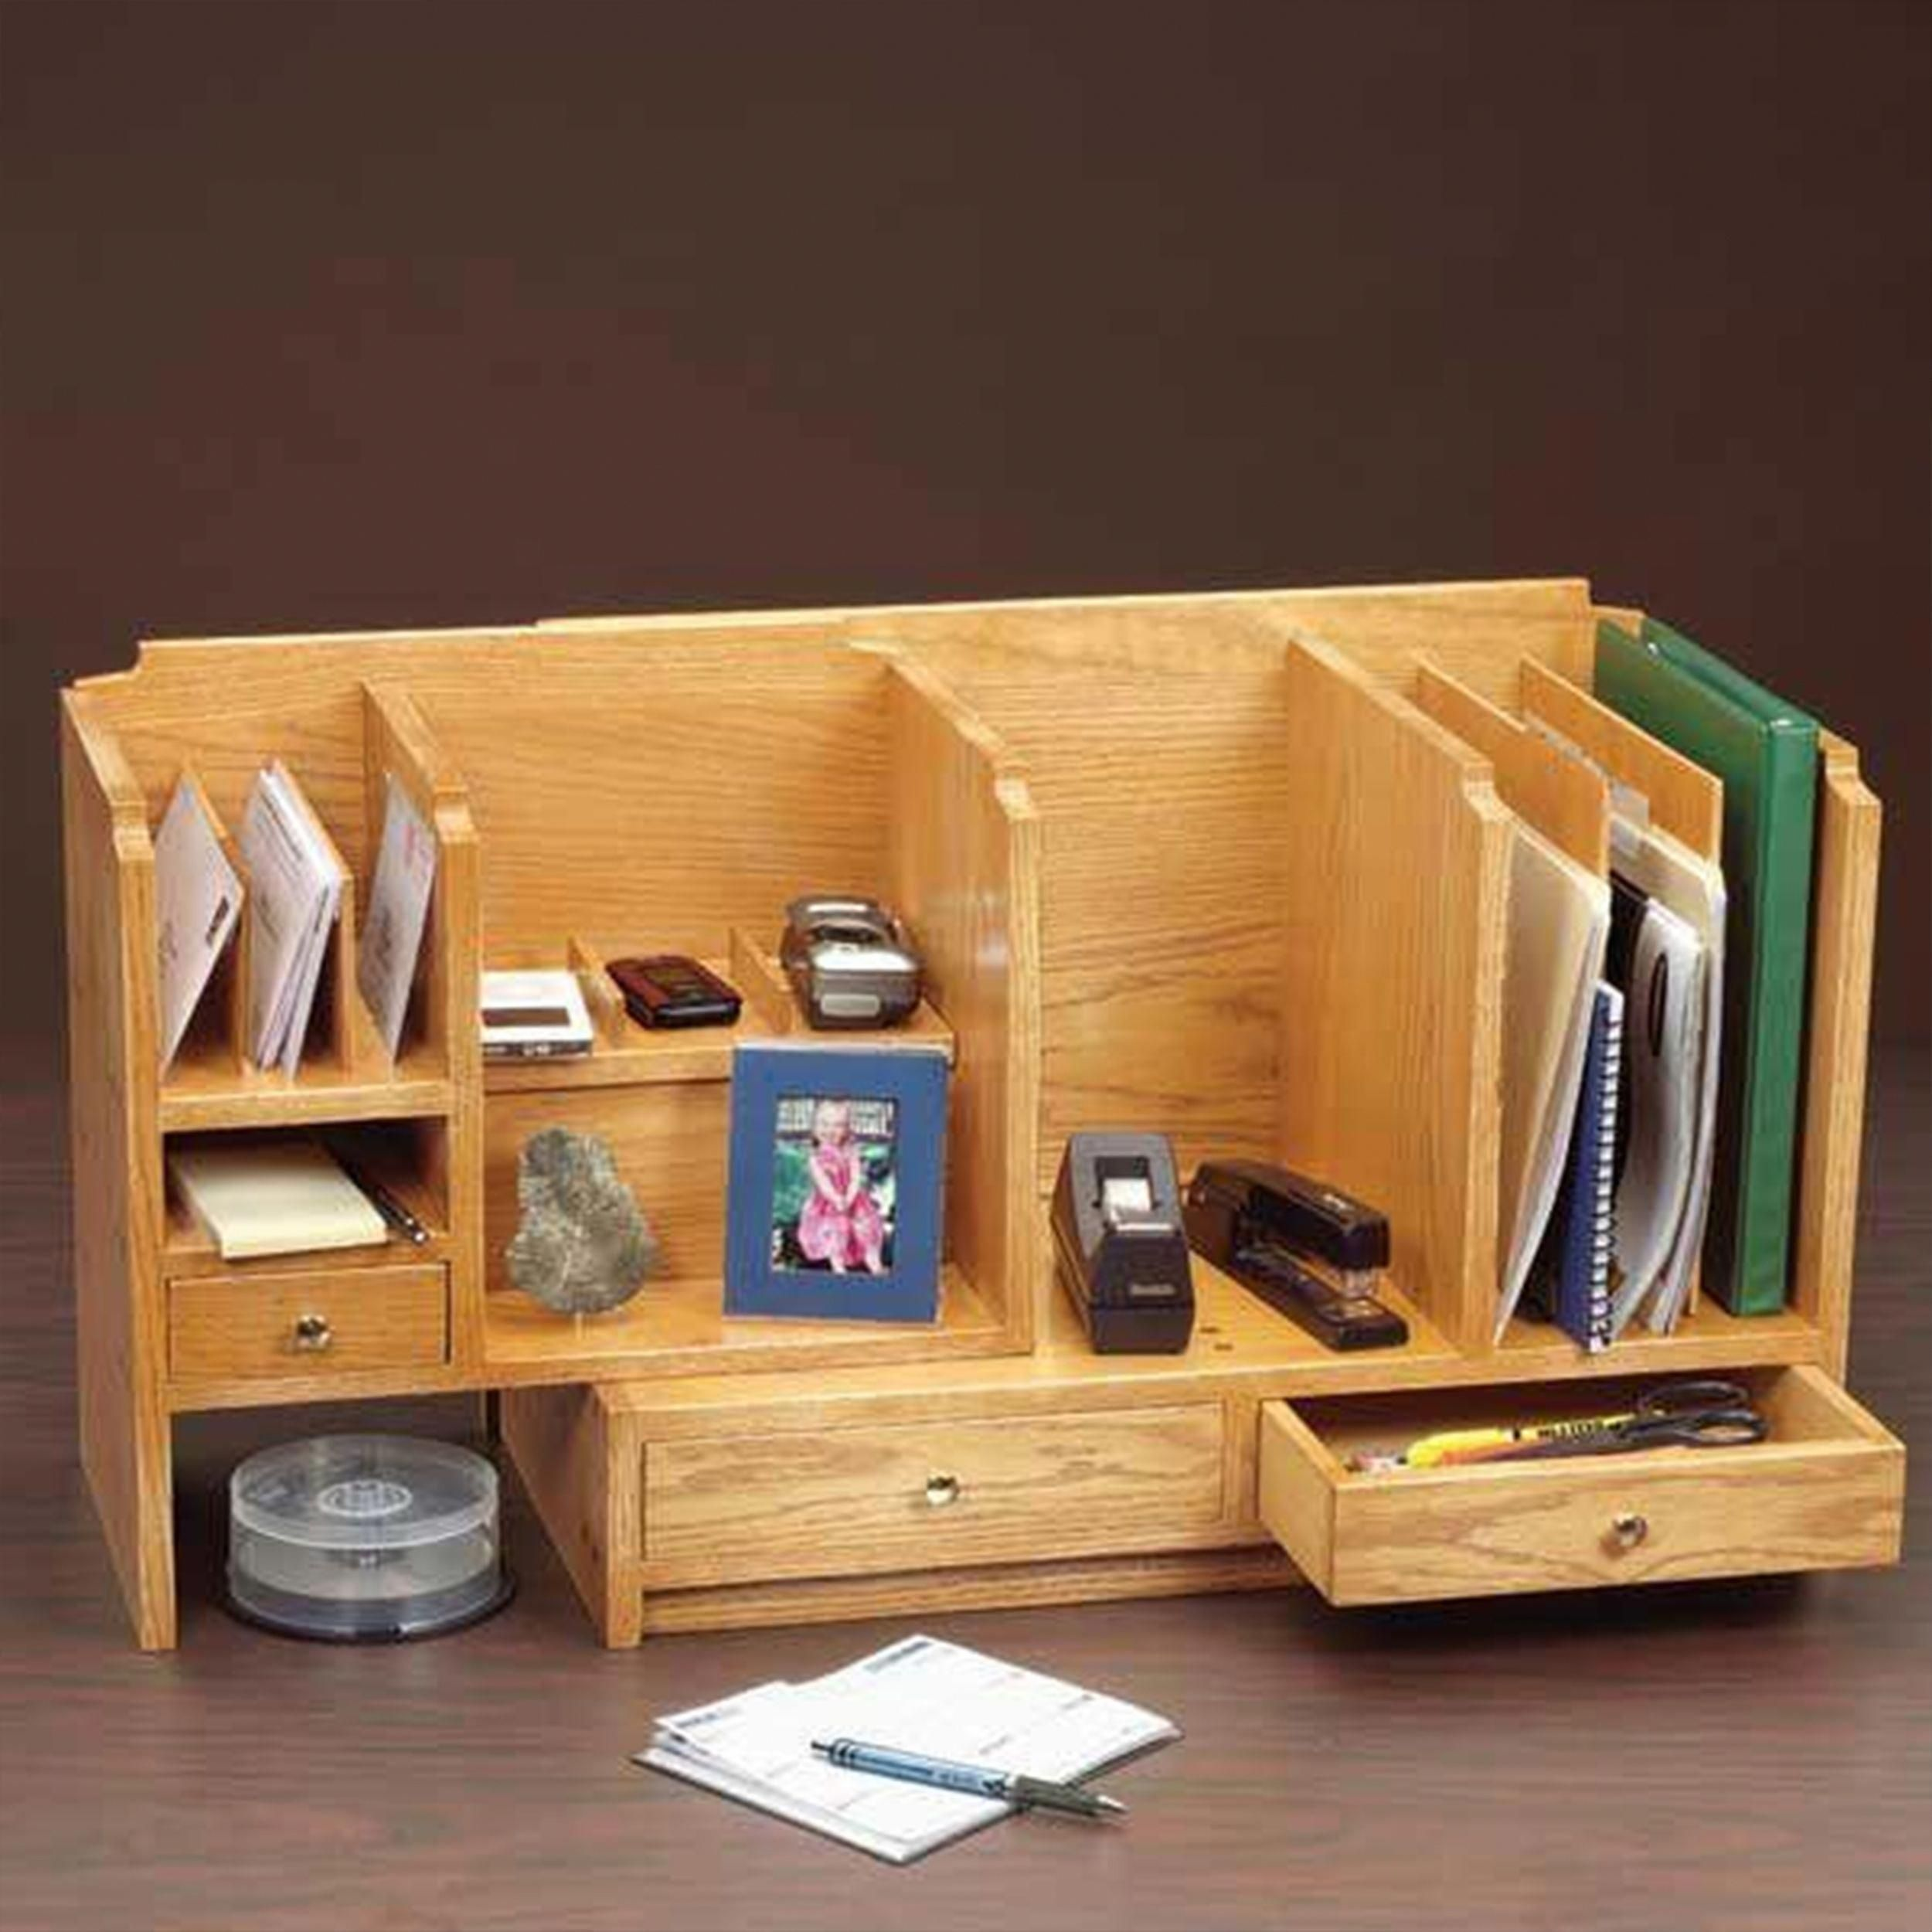 Woodcraft Magazine Woodworking Project Paper Plan To Build Fits All Desktop Organizer Woodworking Projects Desk Desktop Organization Woodworking Furniture